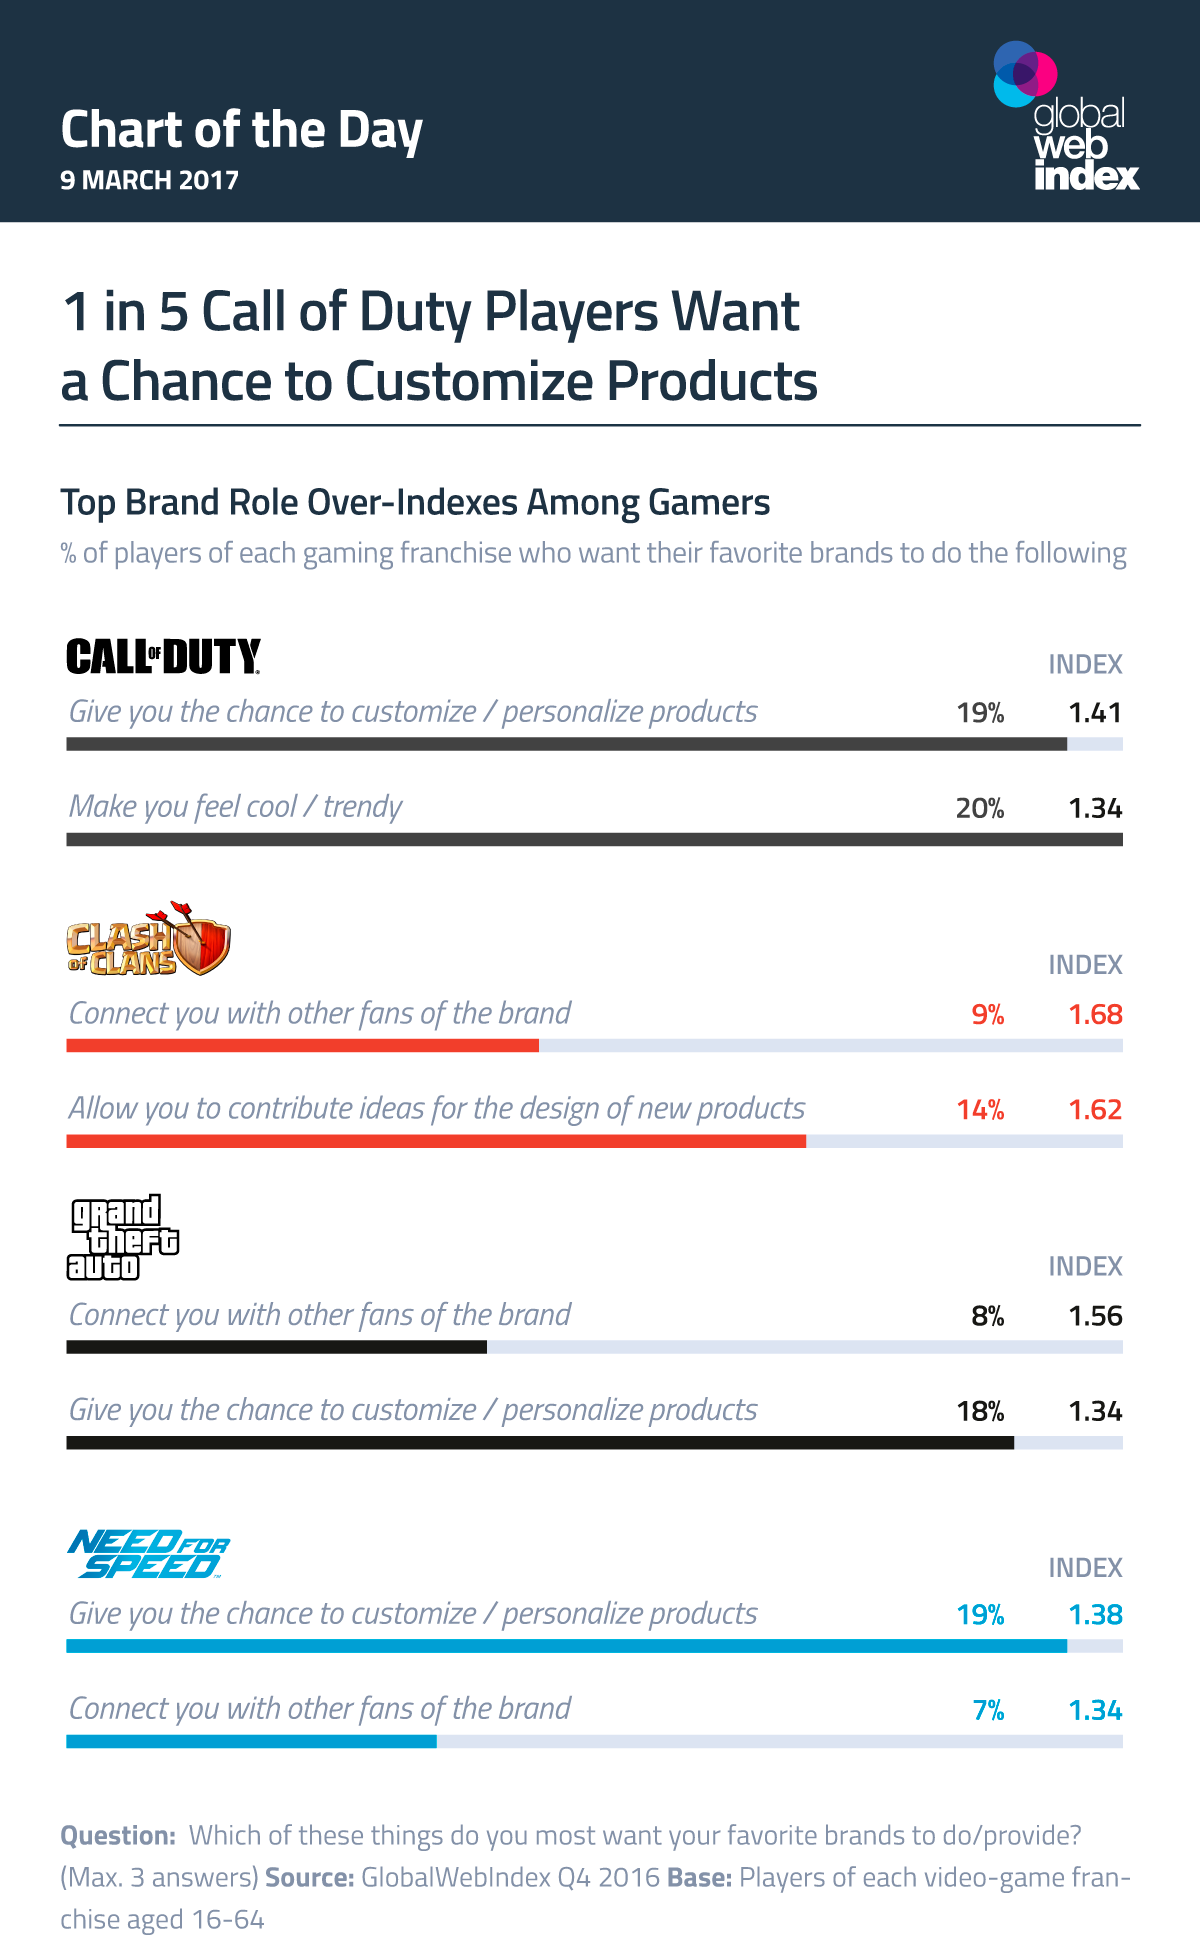 1 in 5 Call of Duty Players Want a Chance to Customize Products